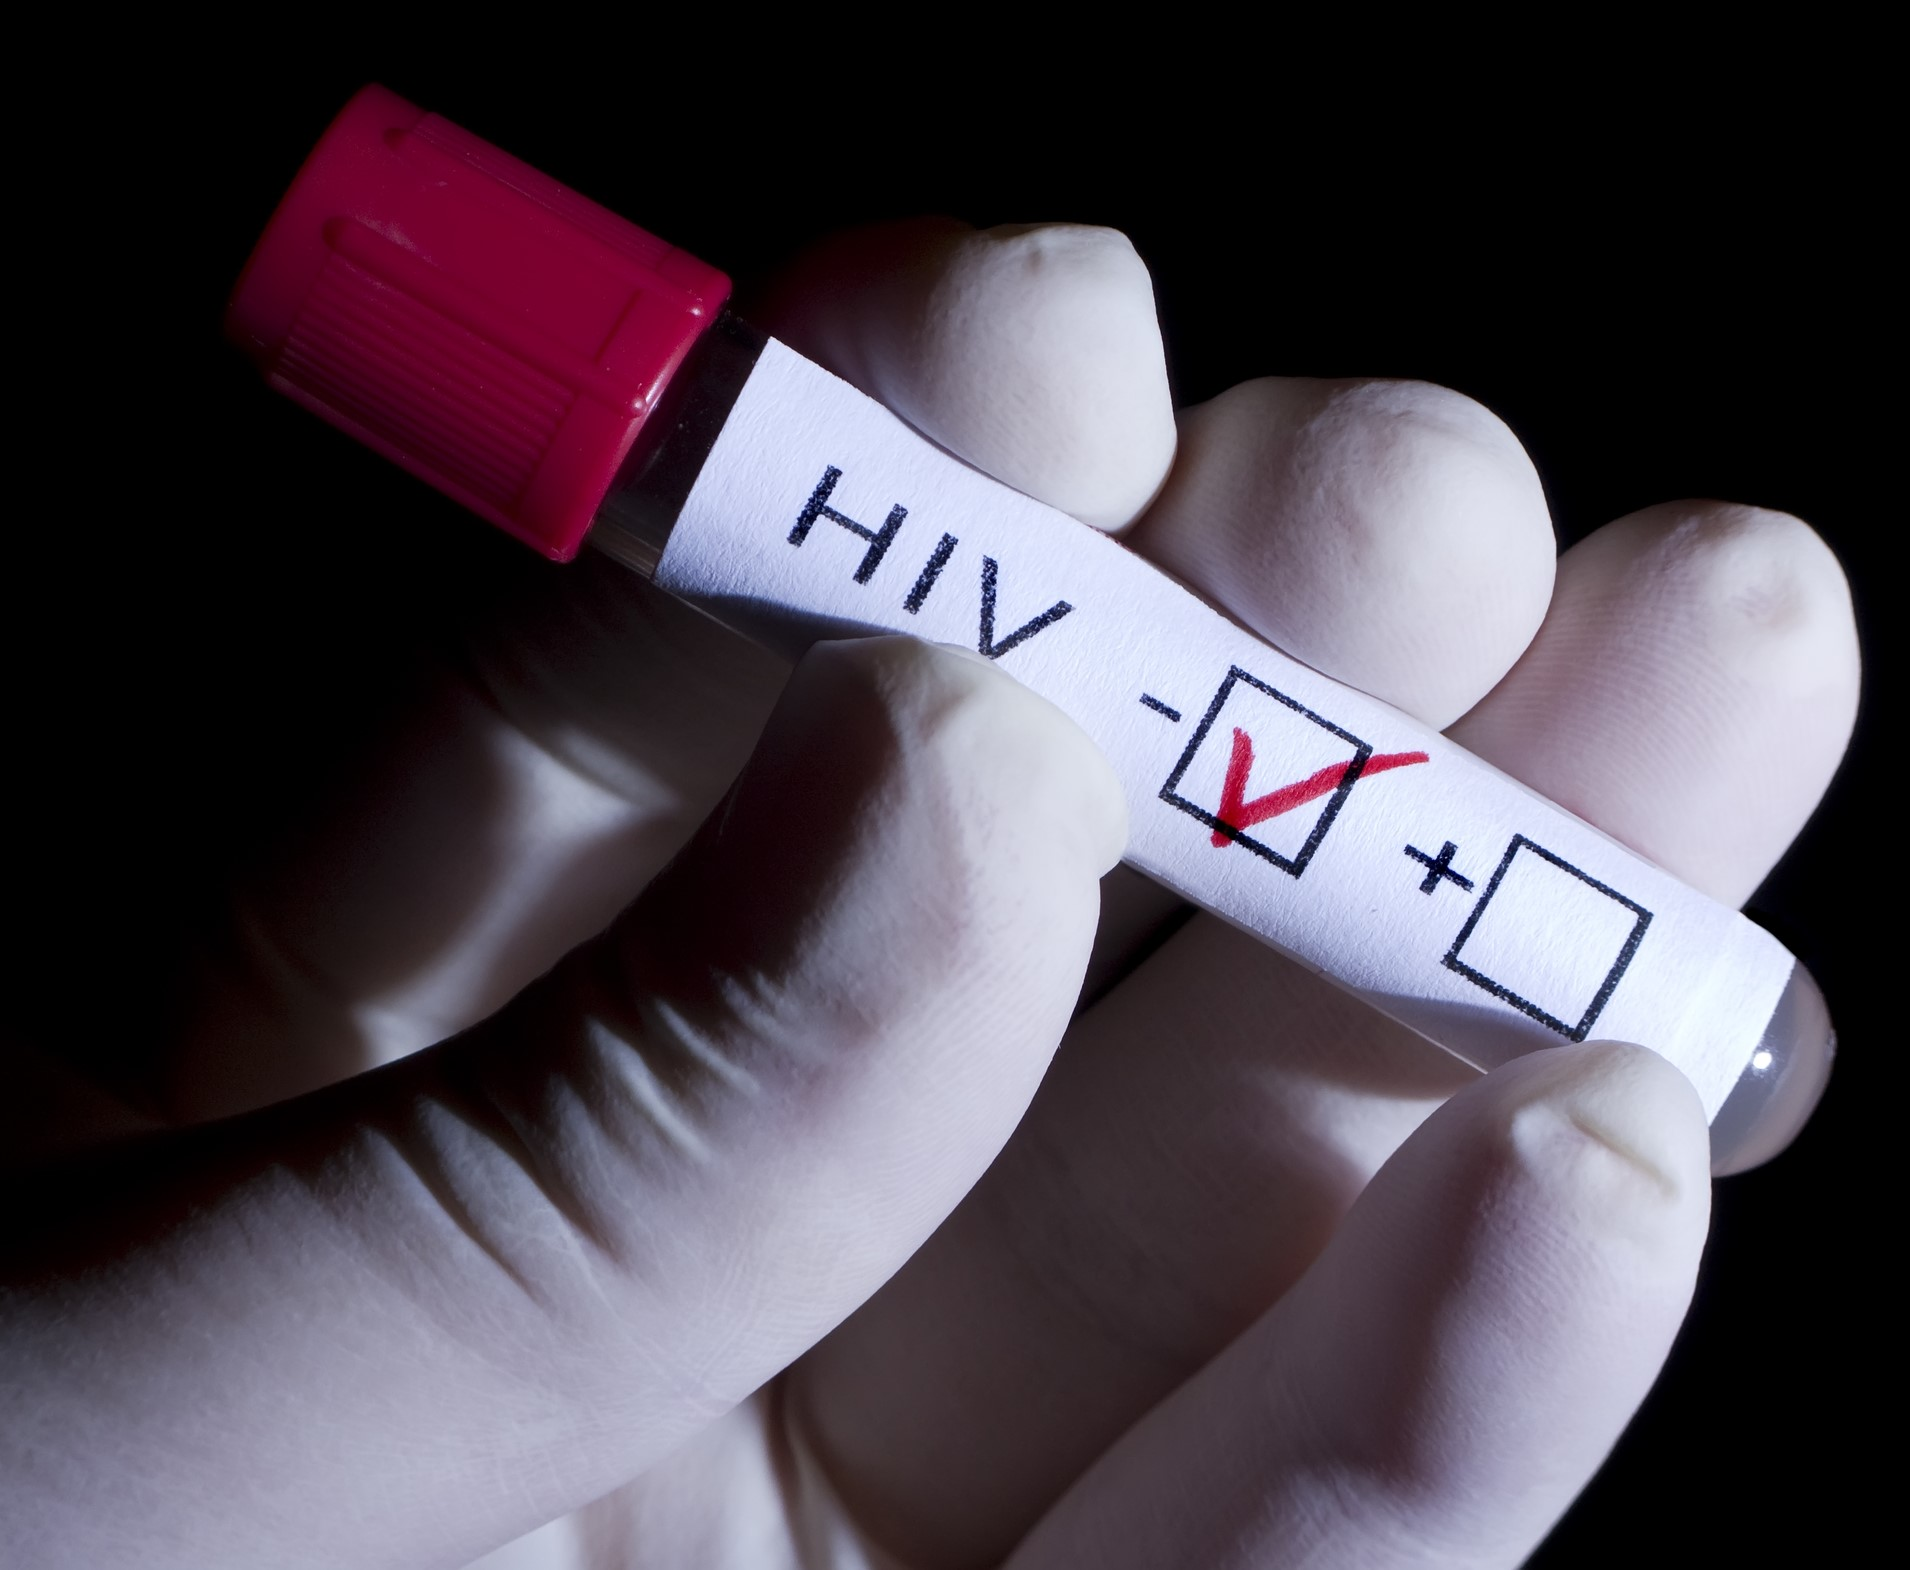 Working towards a vaccine for HIV